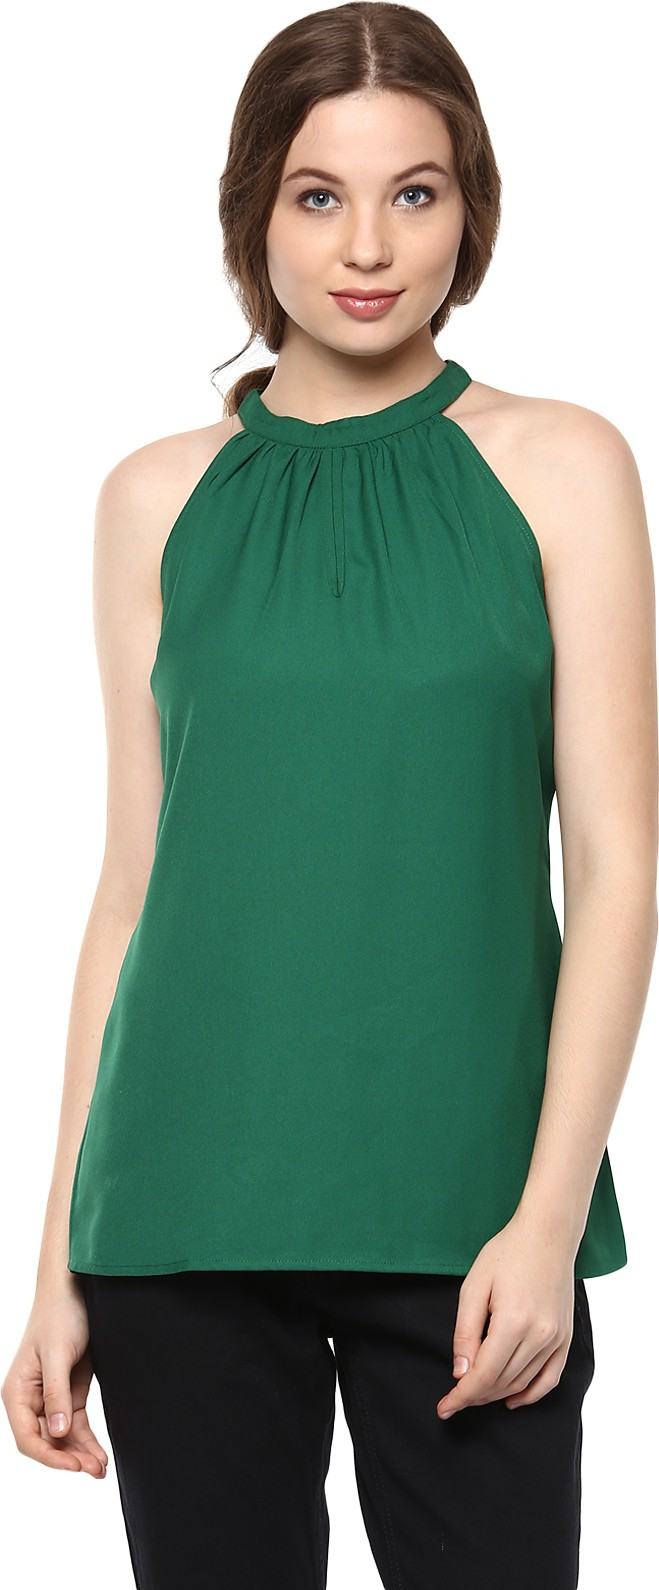 Flipkart - Best Selling Brands Dresses, Tops...